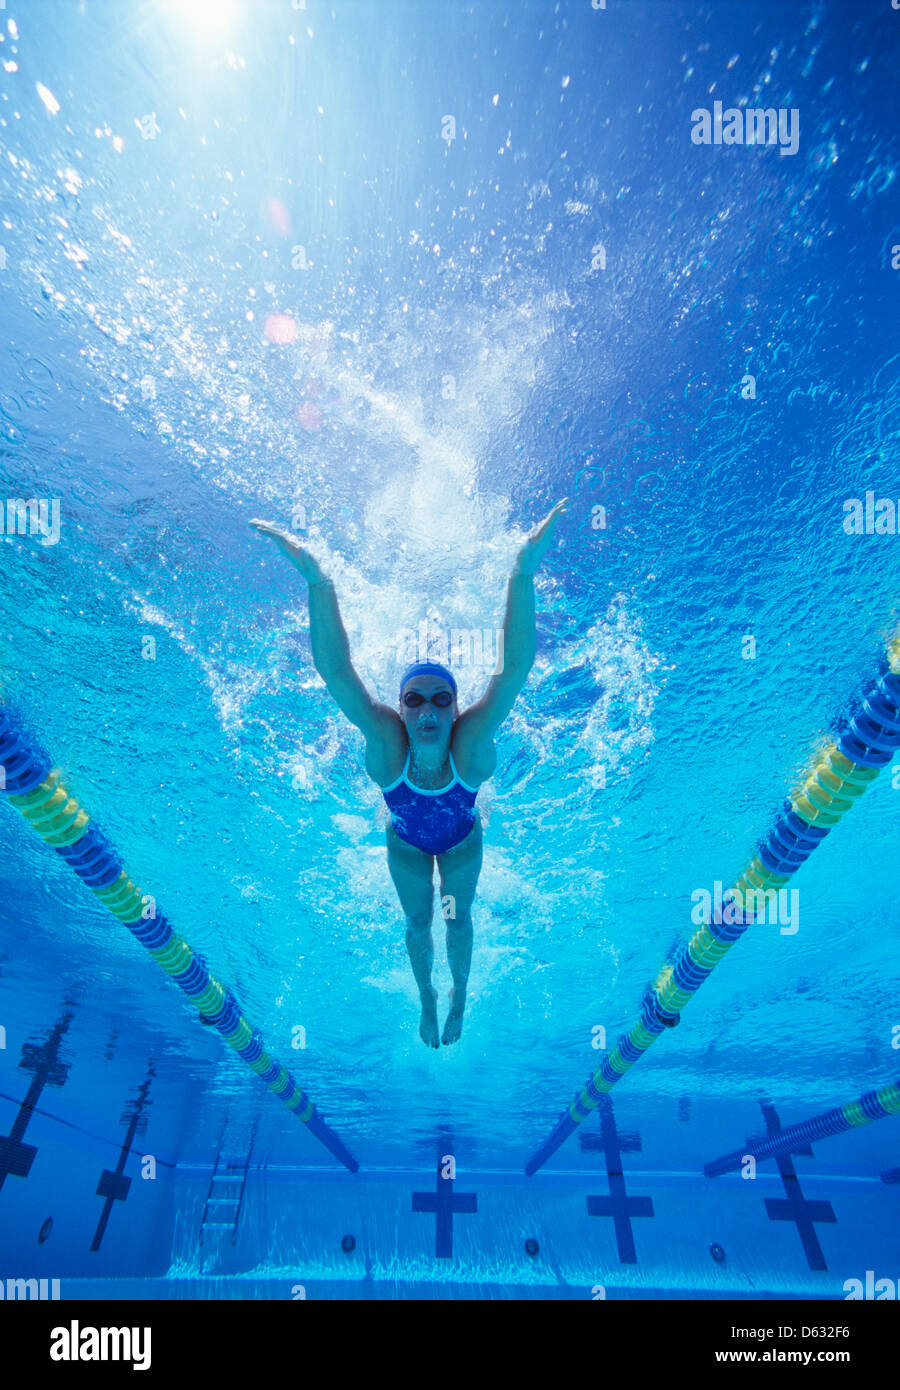 Full length of female swimmer in United States swimsuit swimming in pool - Stock Image